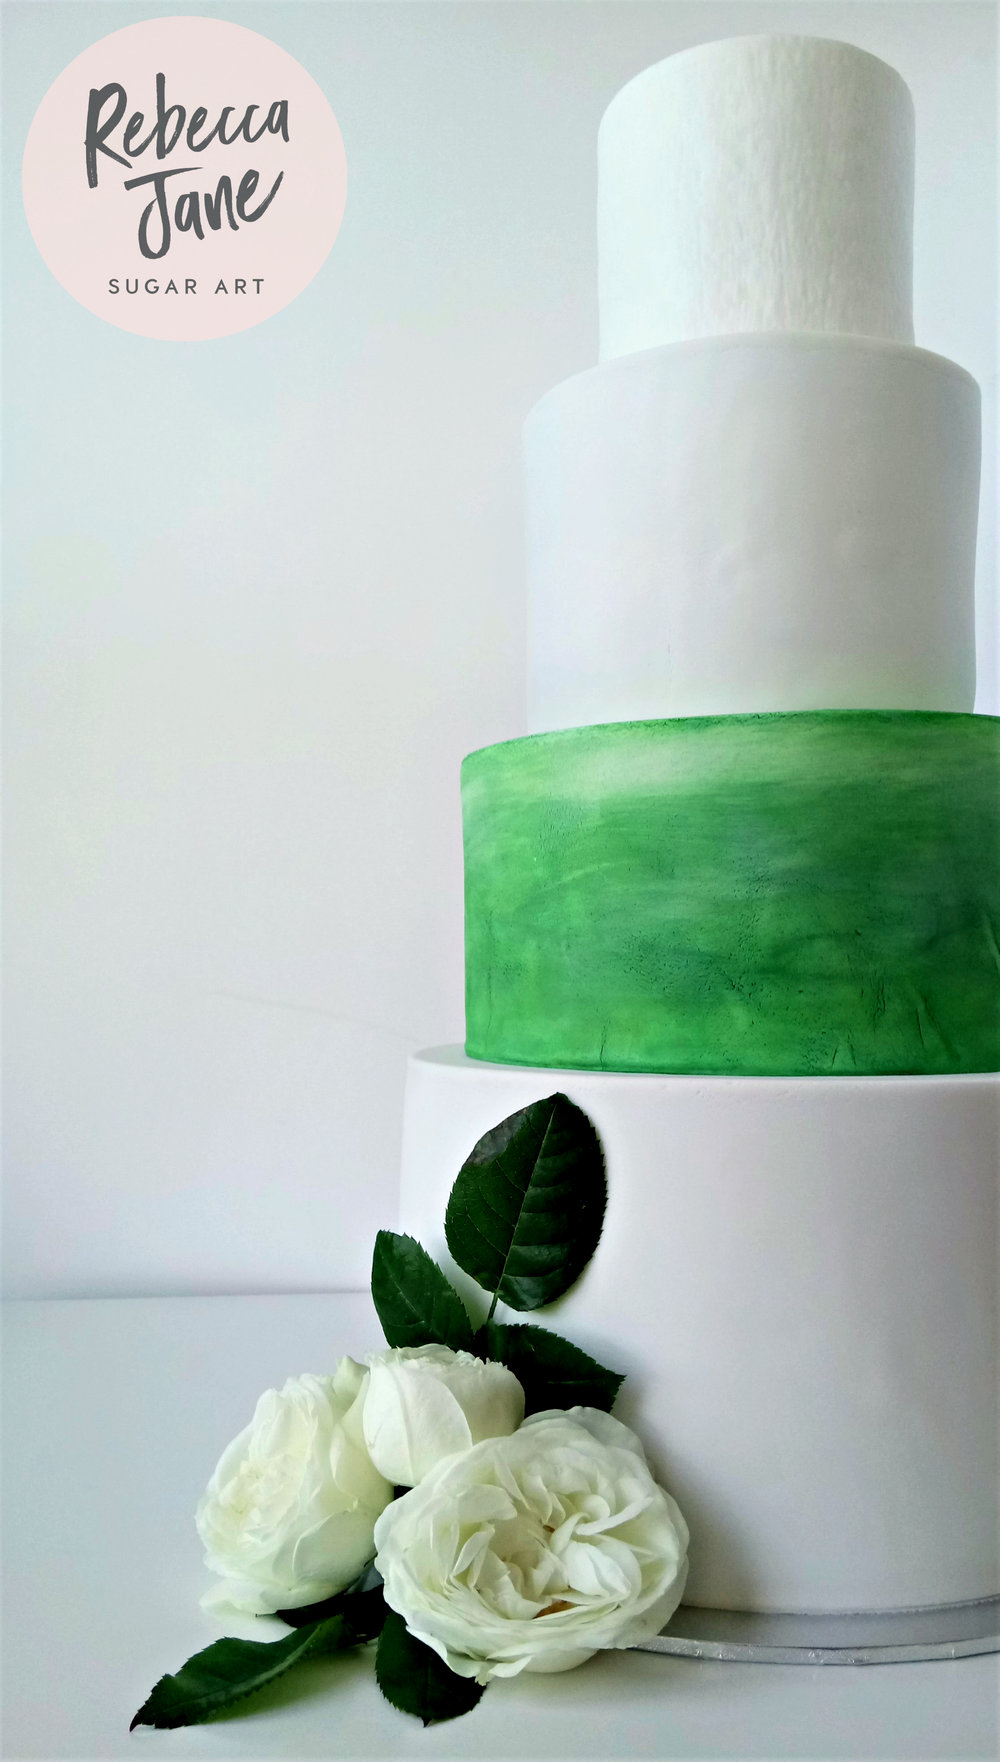 Rebecca Jane Sugar Art - White and green watercolour wedding cake